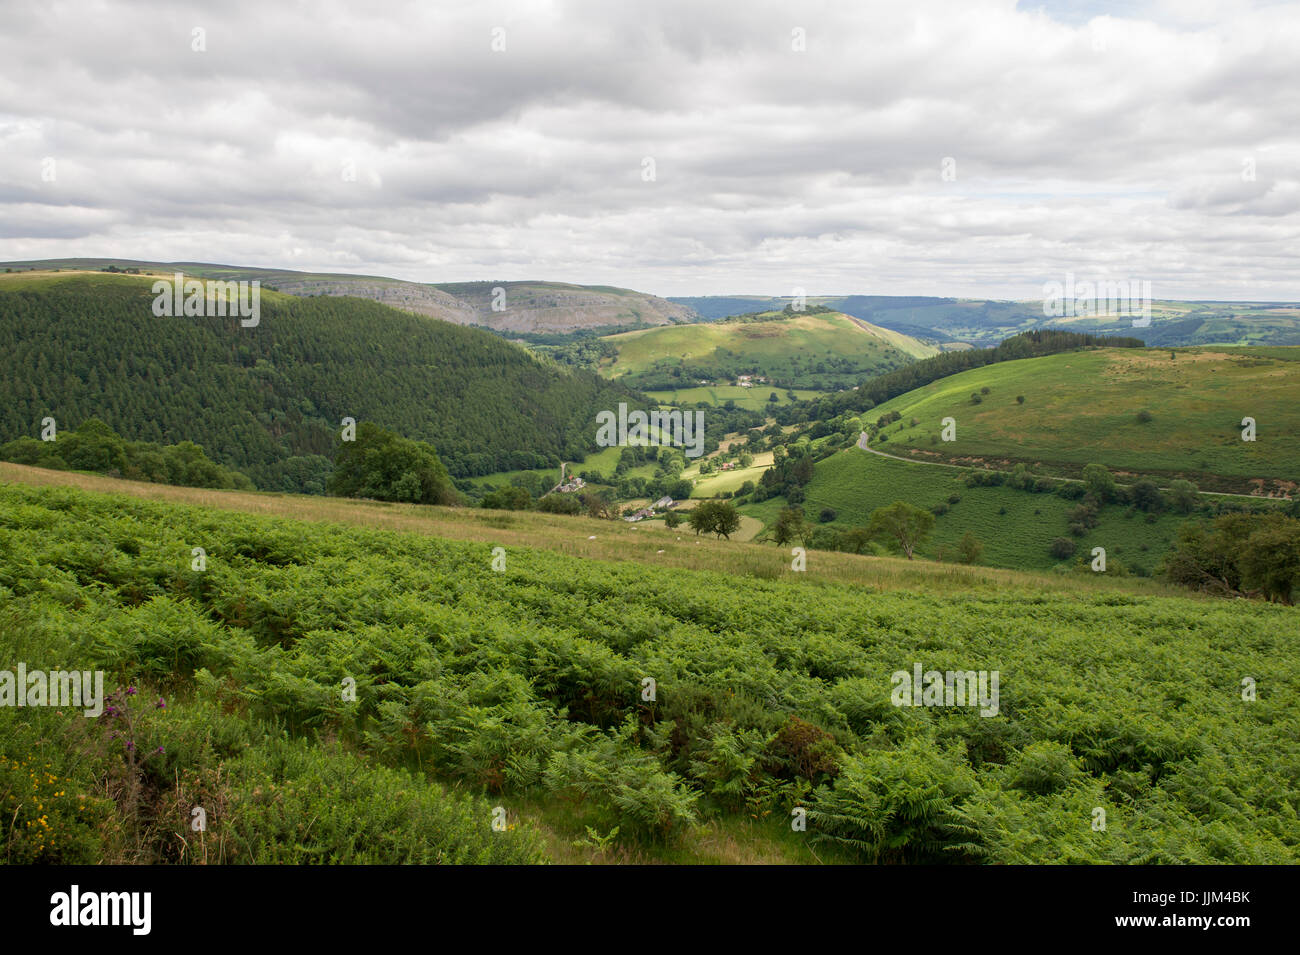 The view of the landscape from Horseshoe Pass on the A542 road near Llangollen in Wales Stock Photo